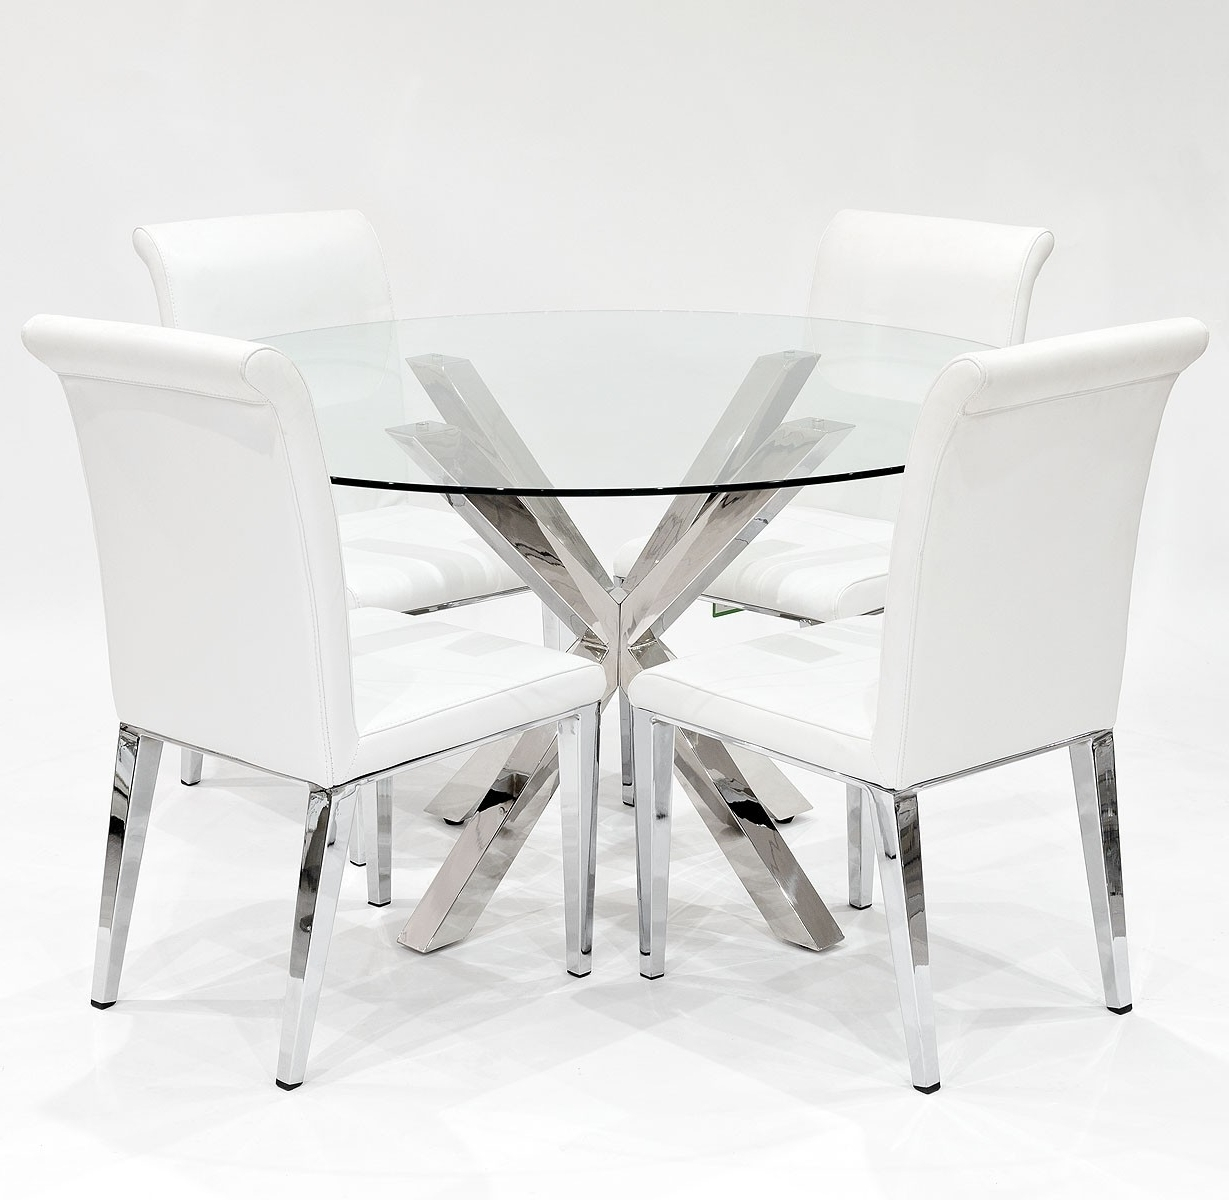 Most Recent Crossly And White Kirkland Dining Set – Be Fabulous! With White Dining Sets (View 20 of 25)